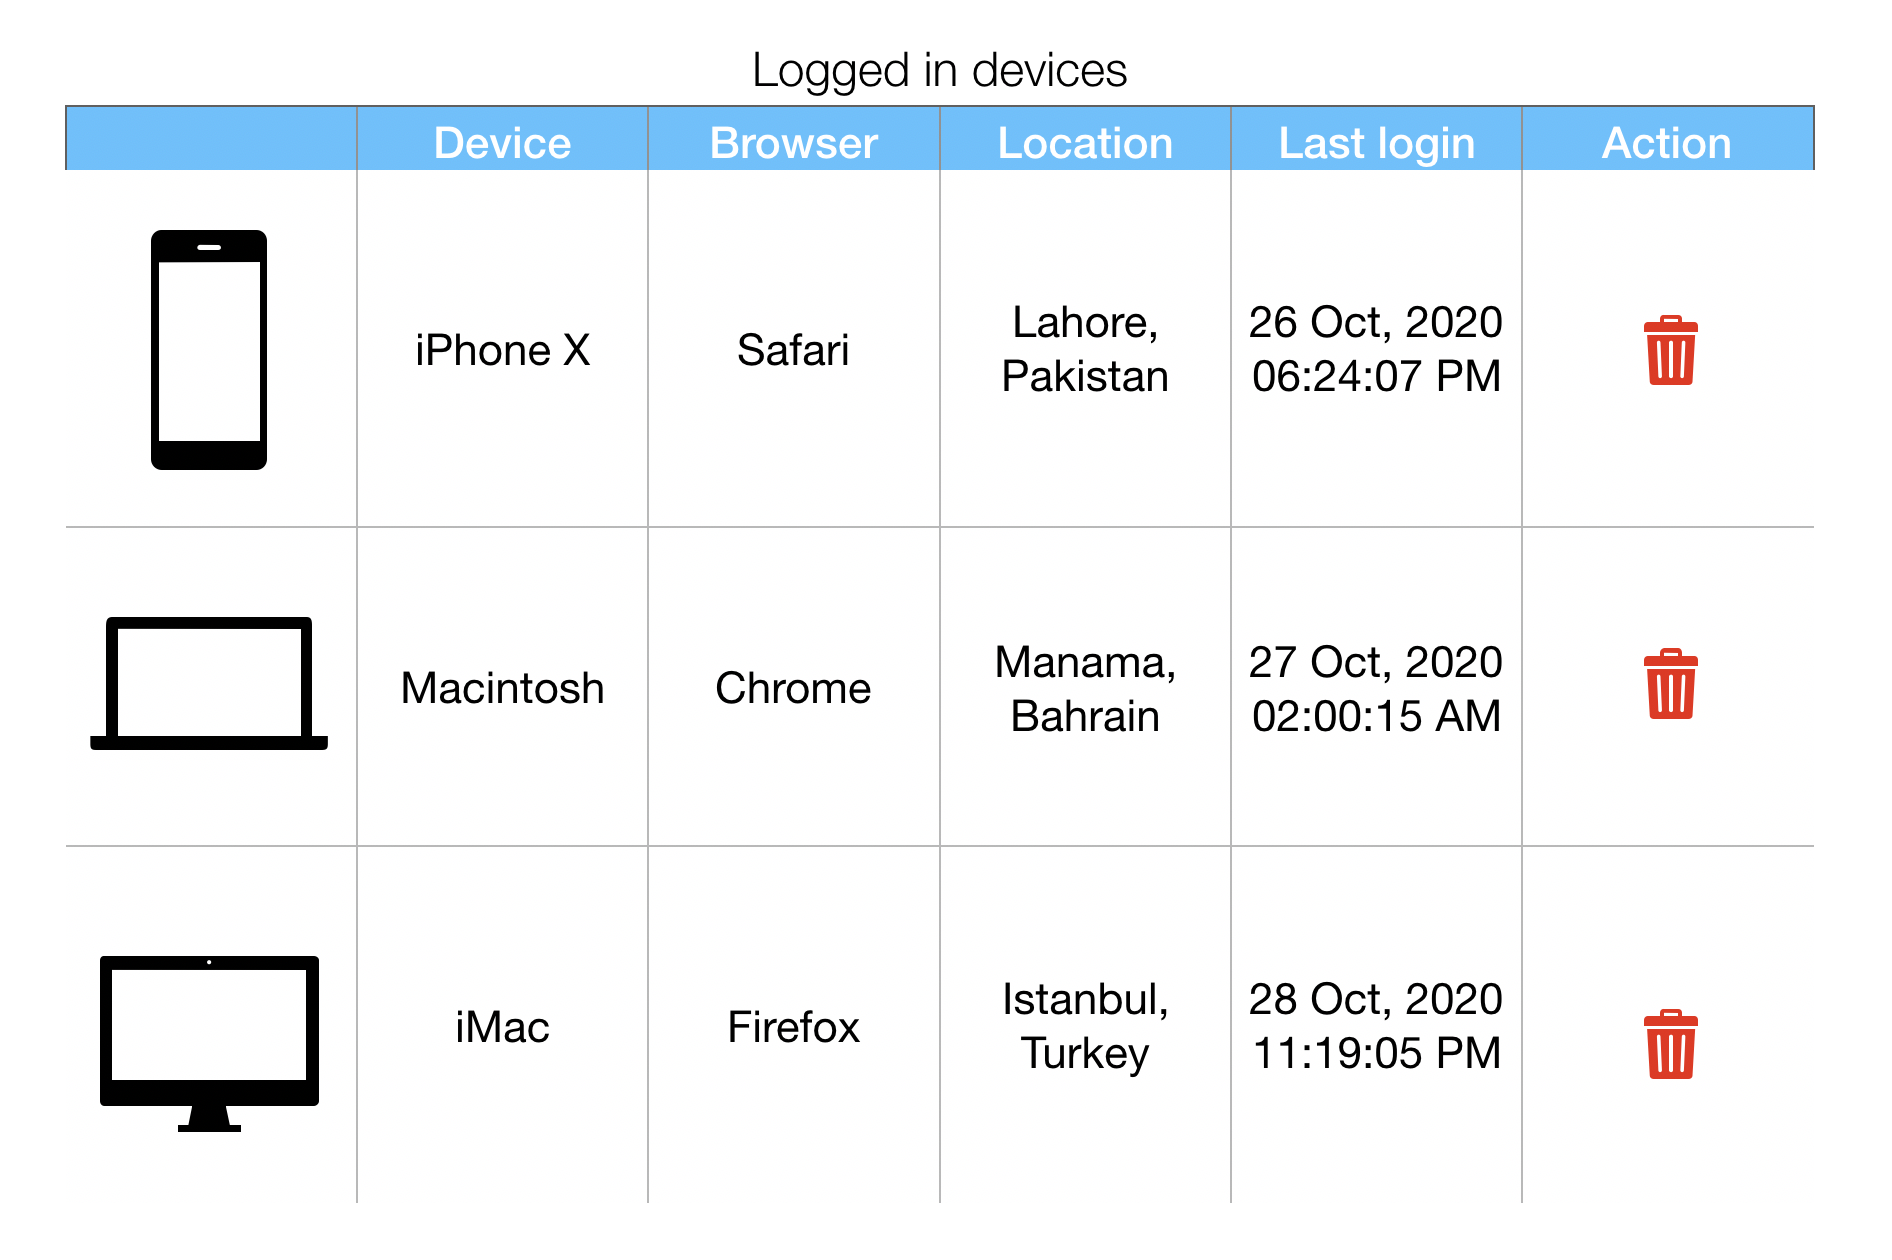 Logged in devices management - PHP & MySQL